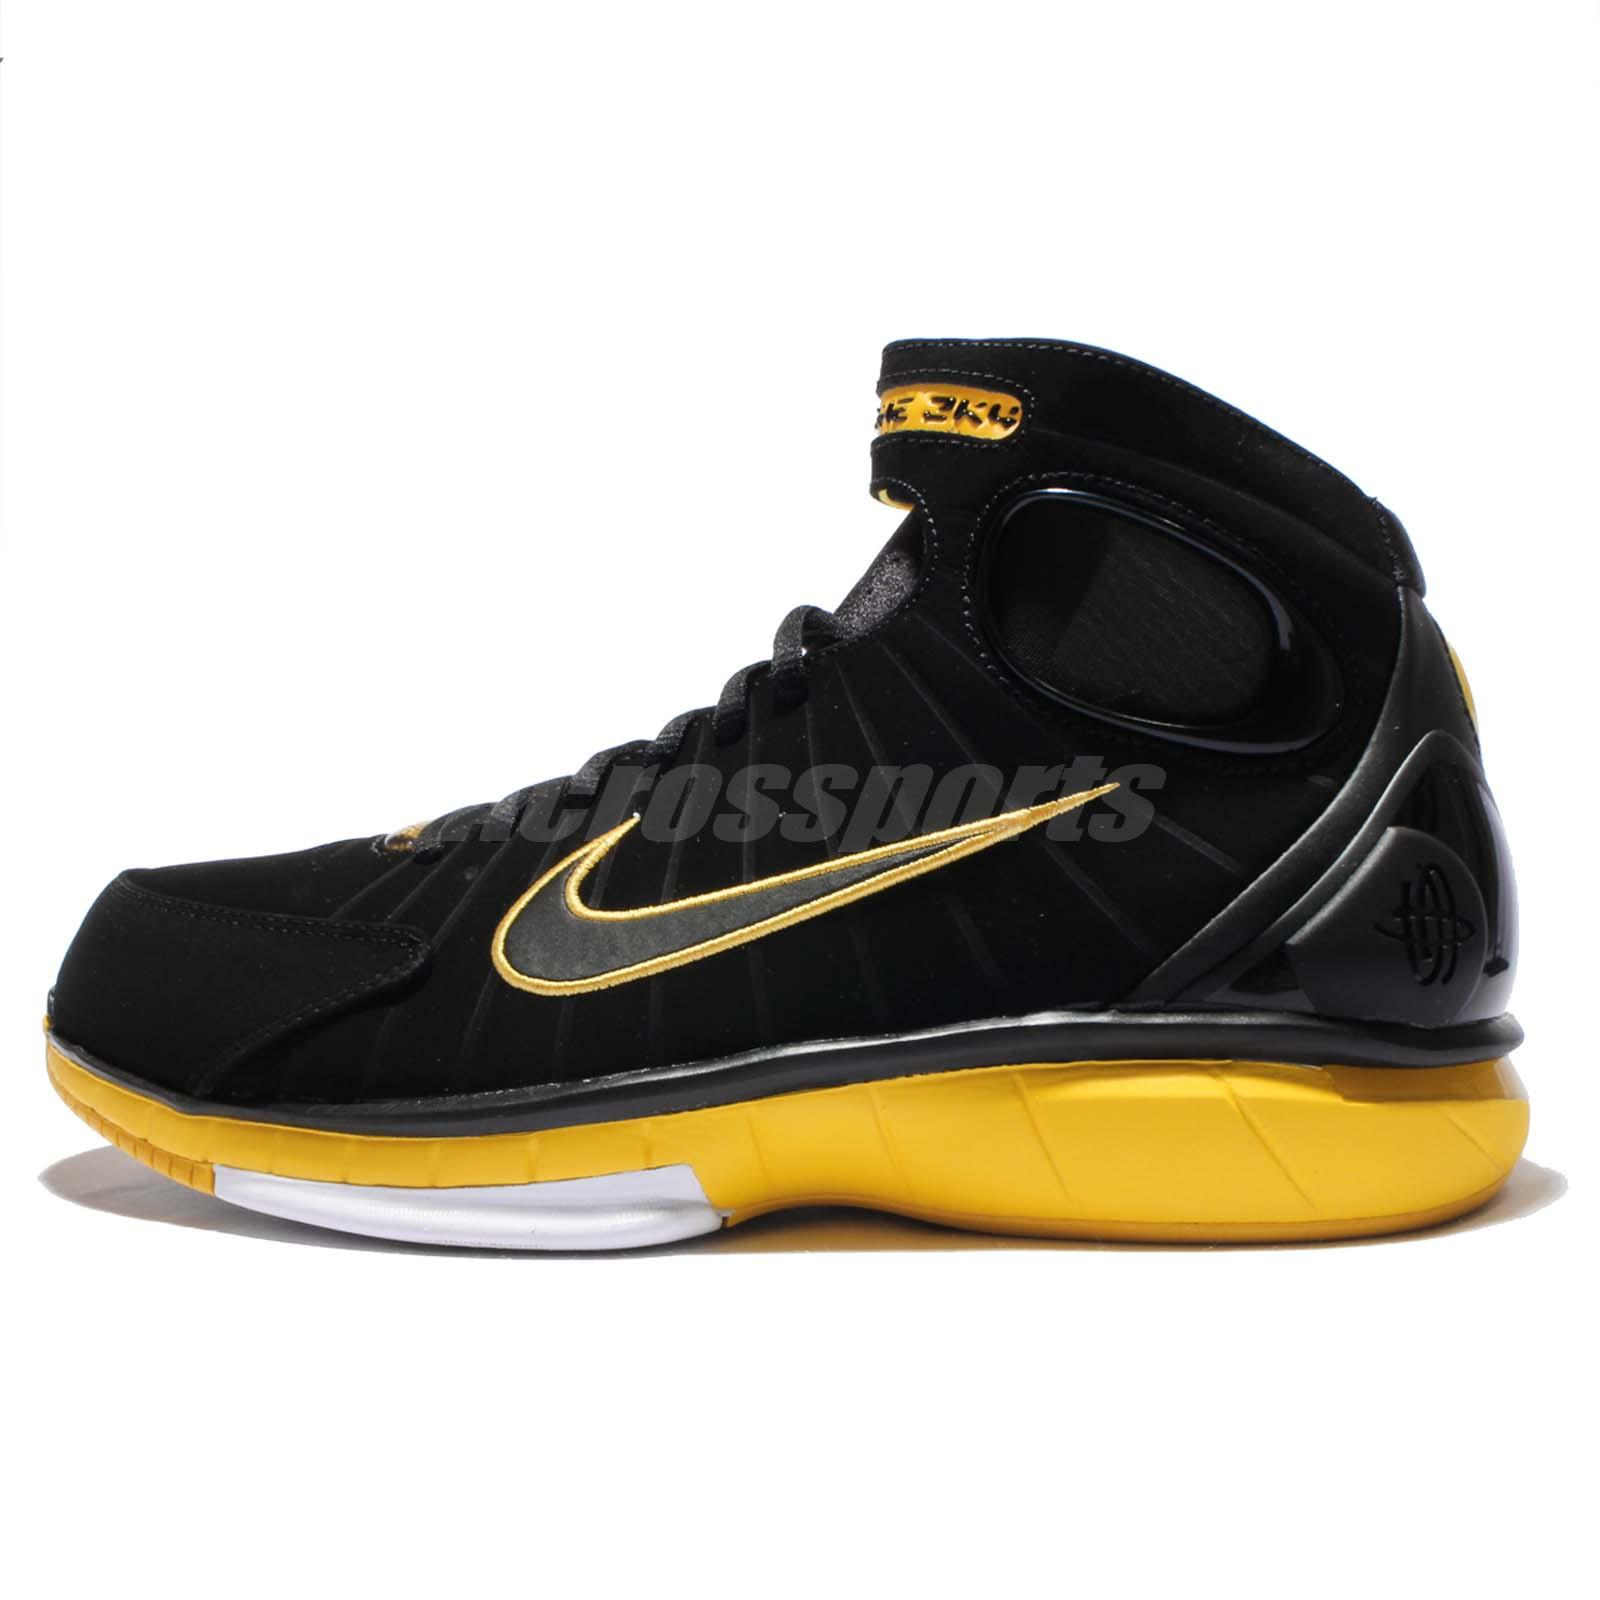 c763058877ad ... where to buy kobe nike air huarache 2k4 1d7de 16baf